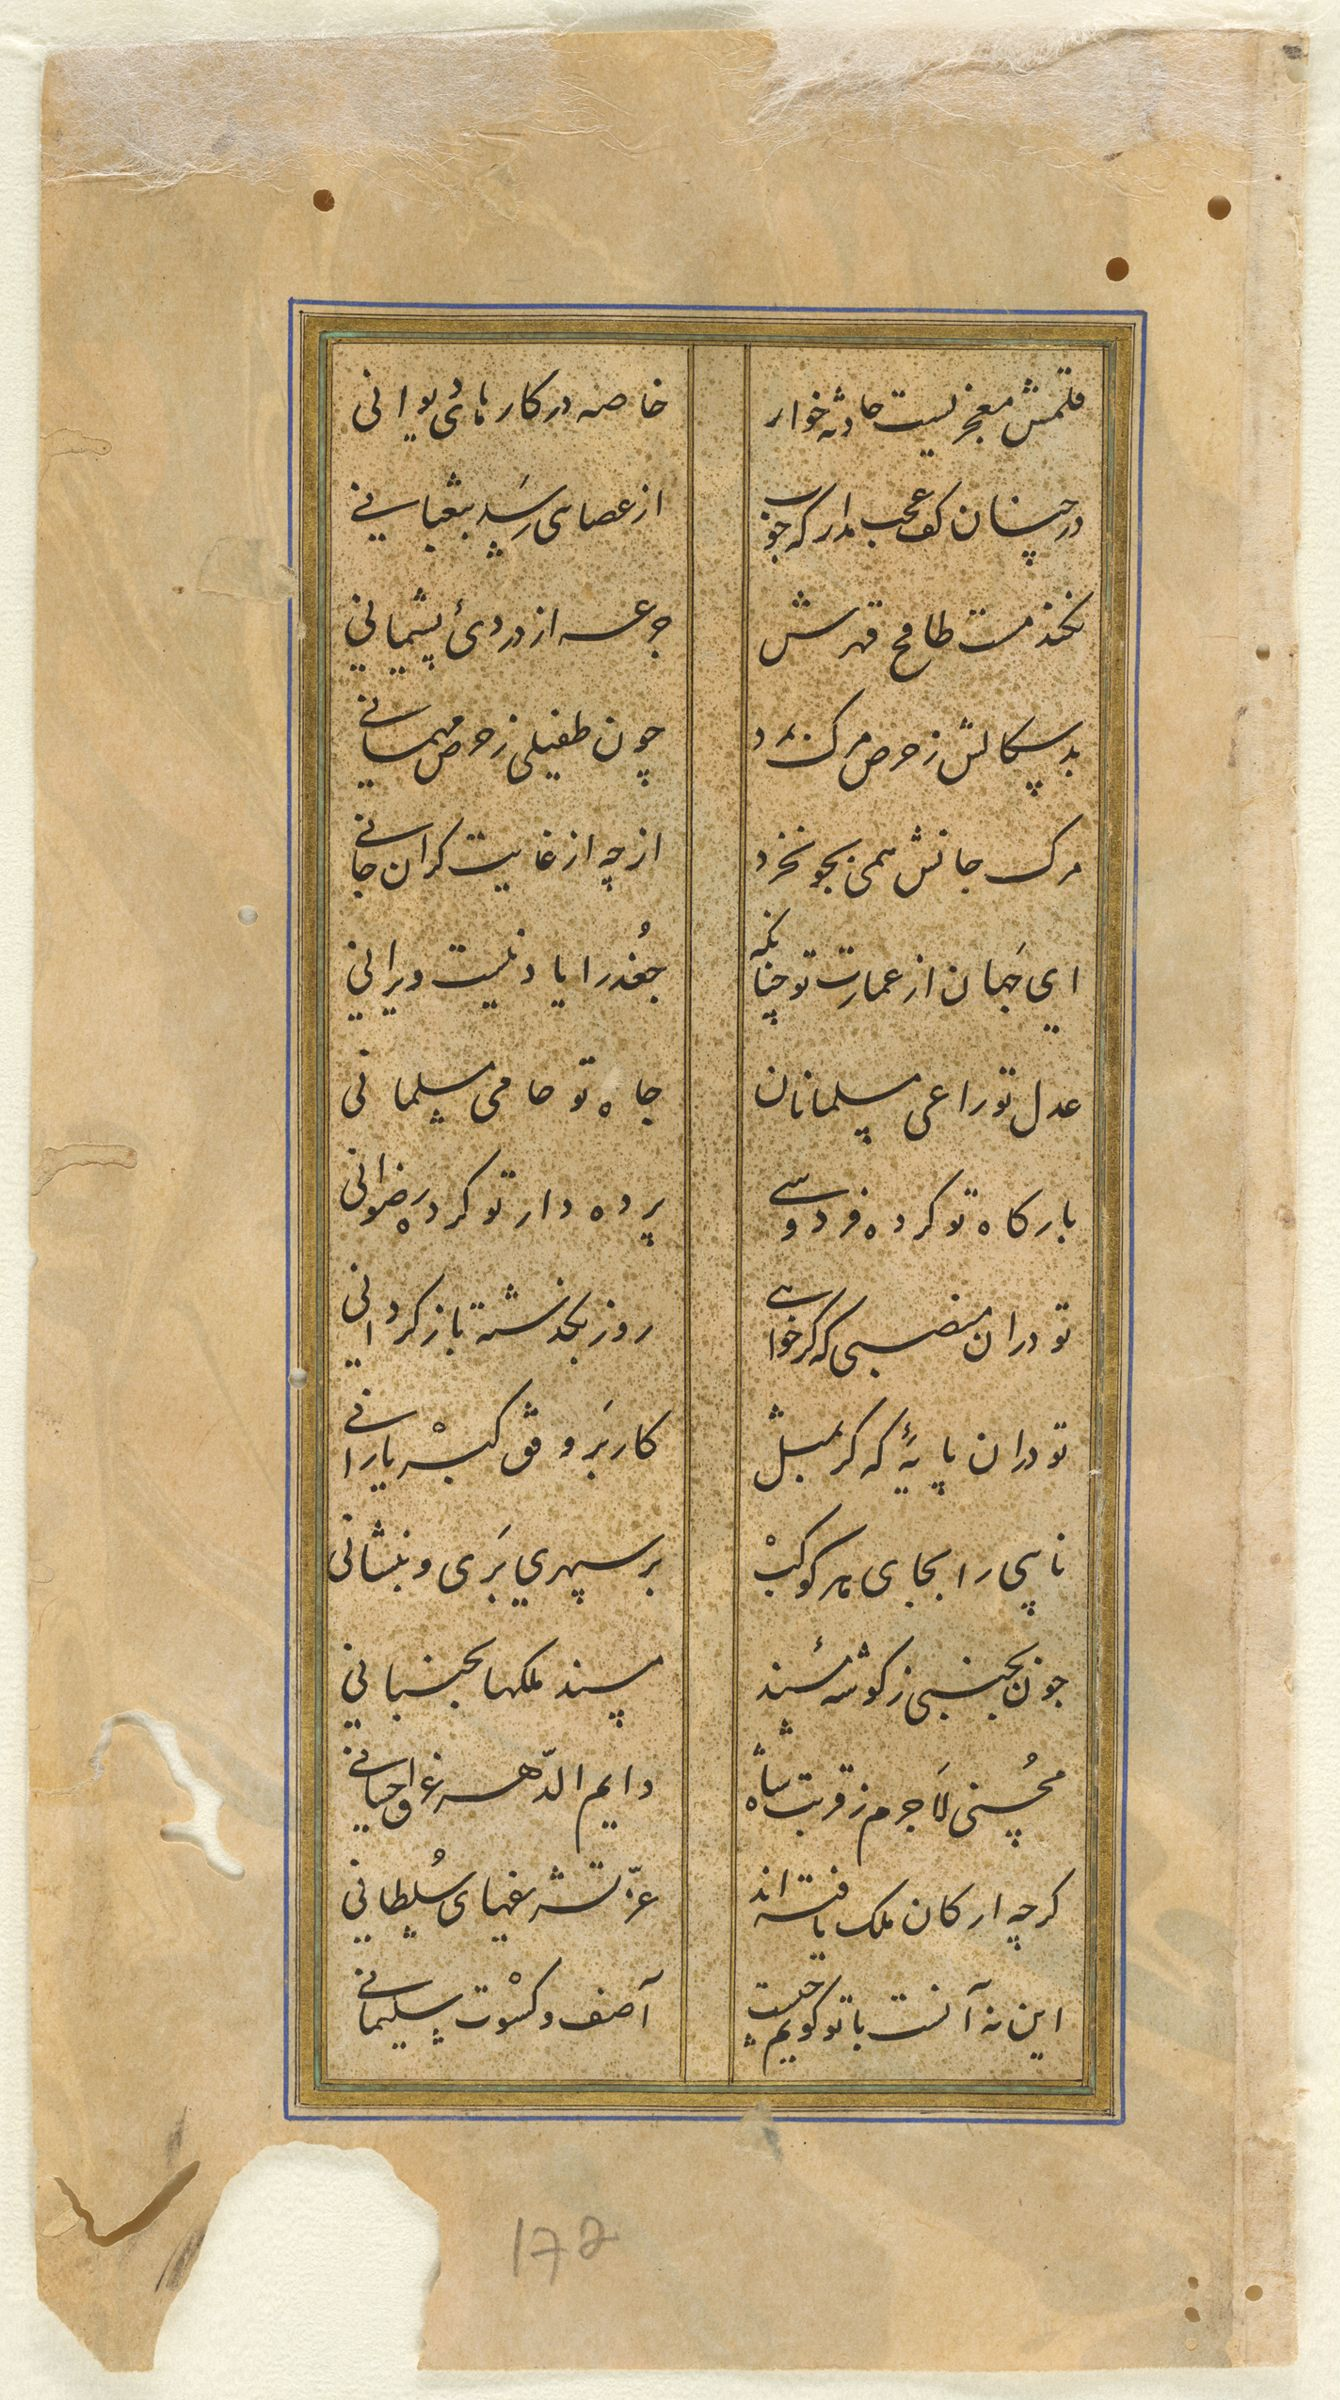 Folio 172 (Text, Recto And Verso), From A Manuscript Of The Divan (Collection Of Works) Of Anvari